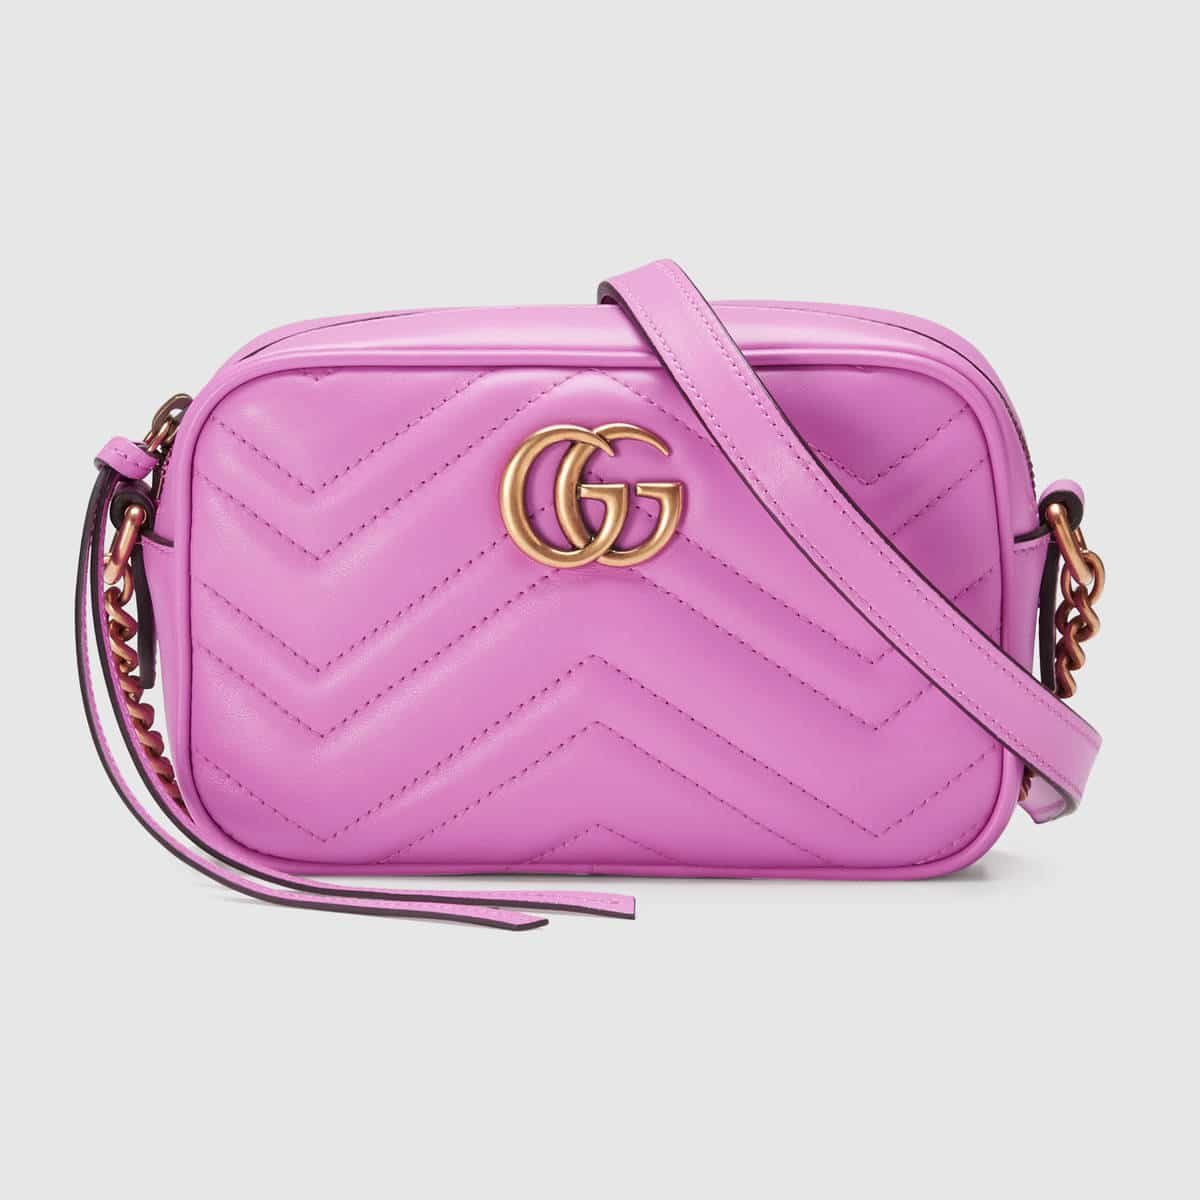 Gucci GG Marmont Camera Bag Reference Guide